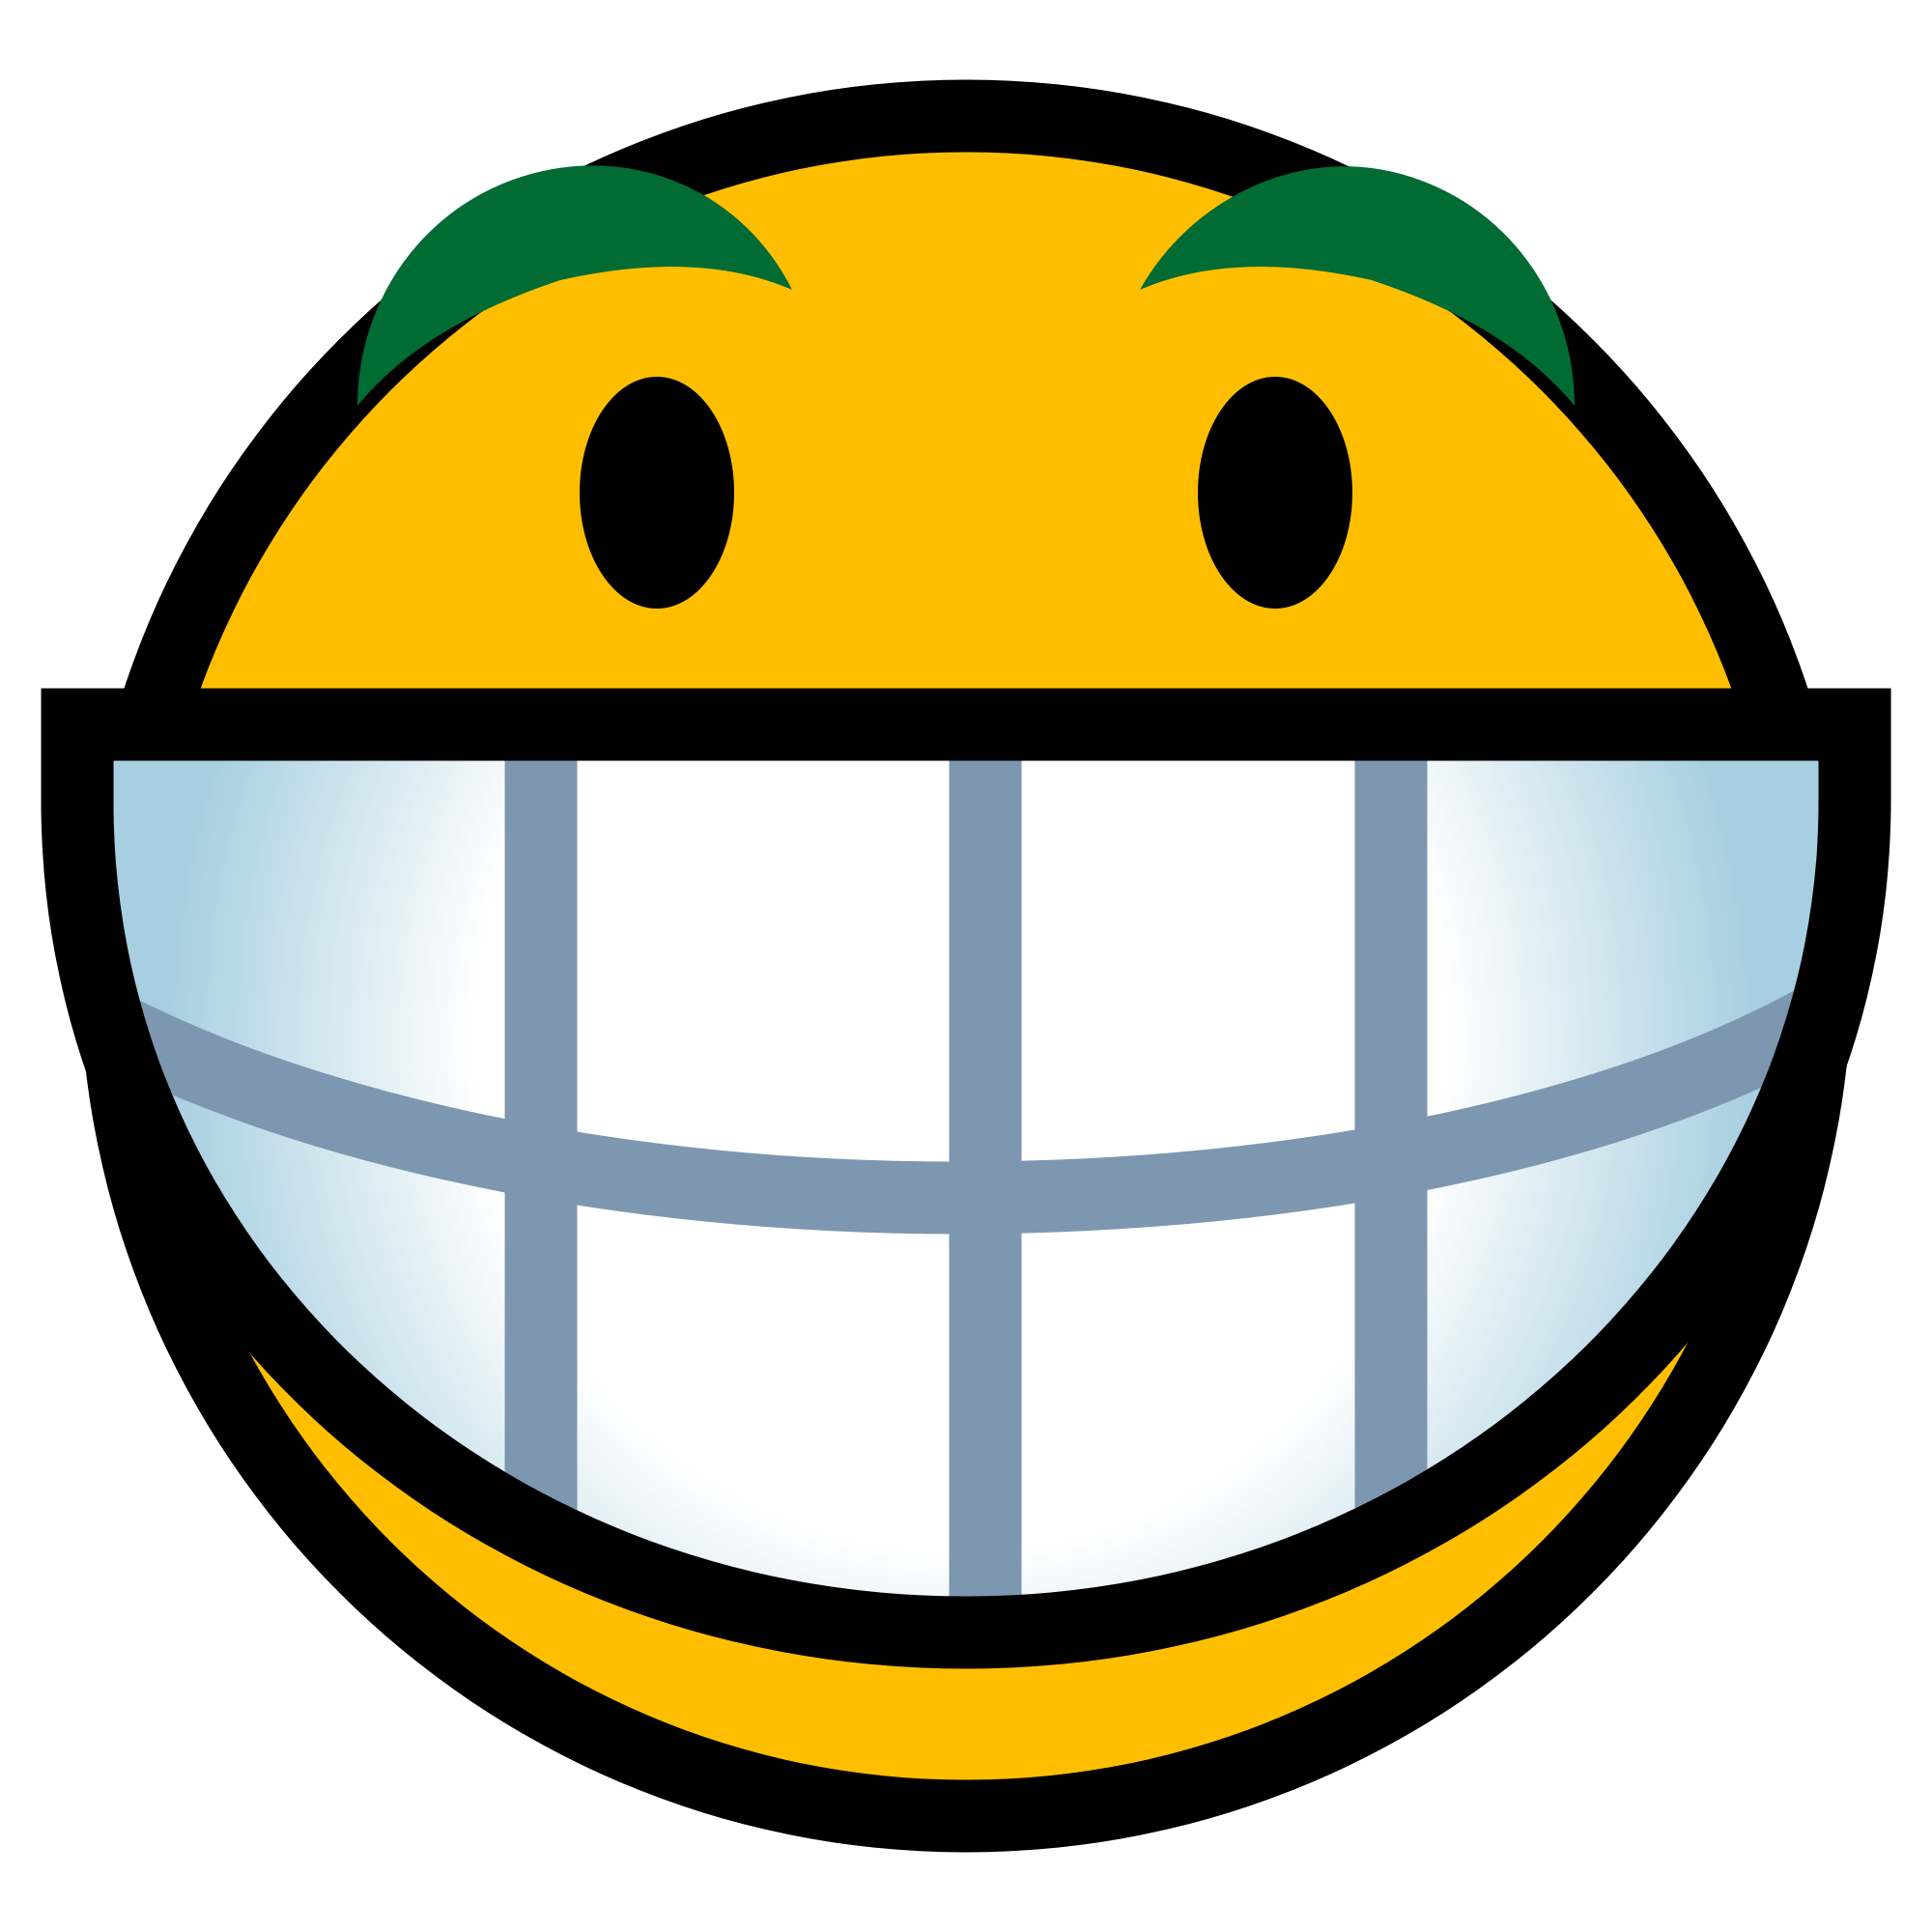 File:Biggrin-smiley.png - Wikimedia Commons - PNG Grin